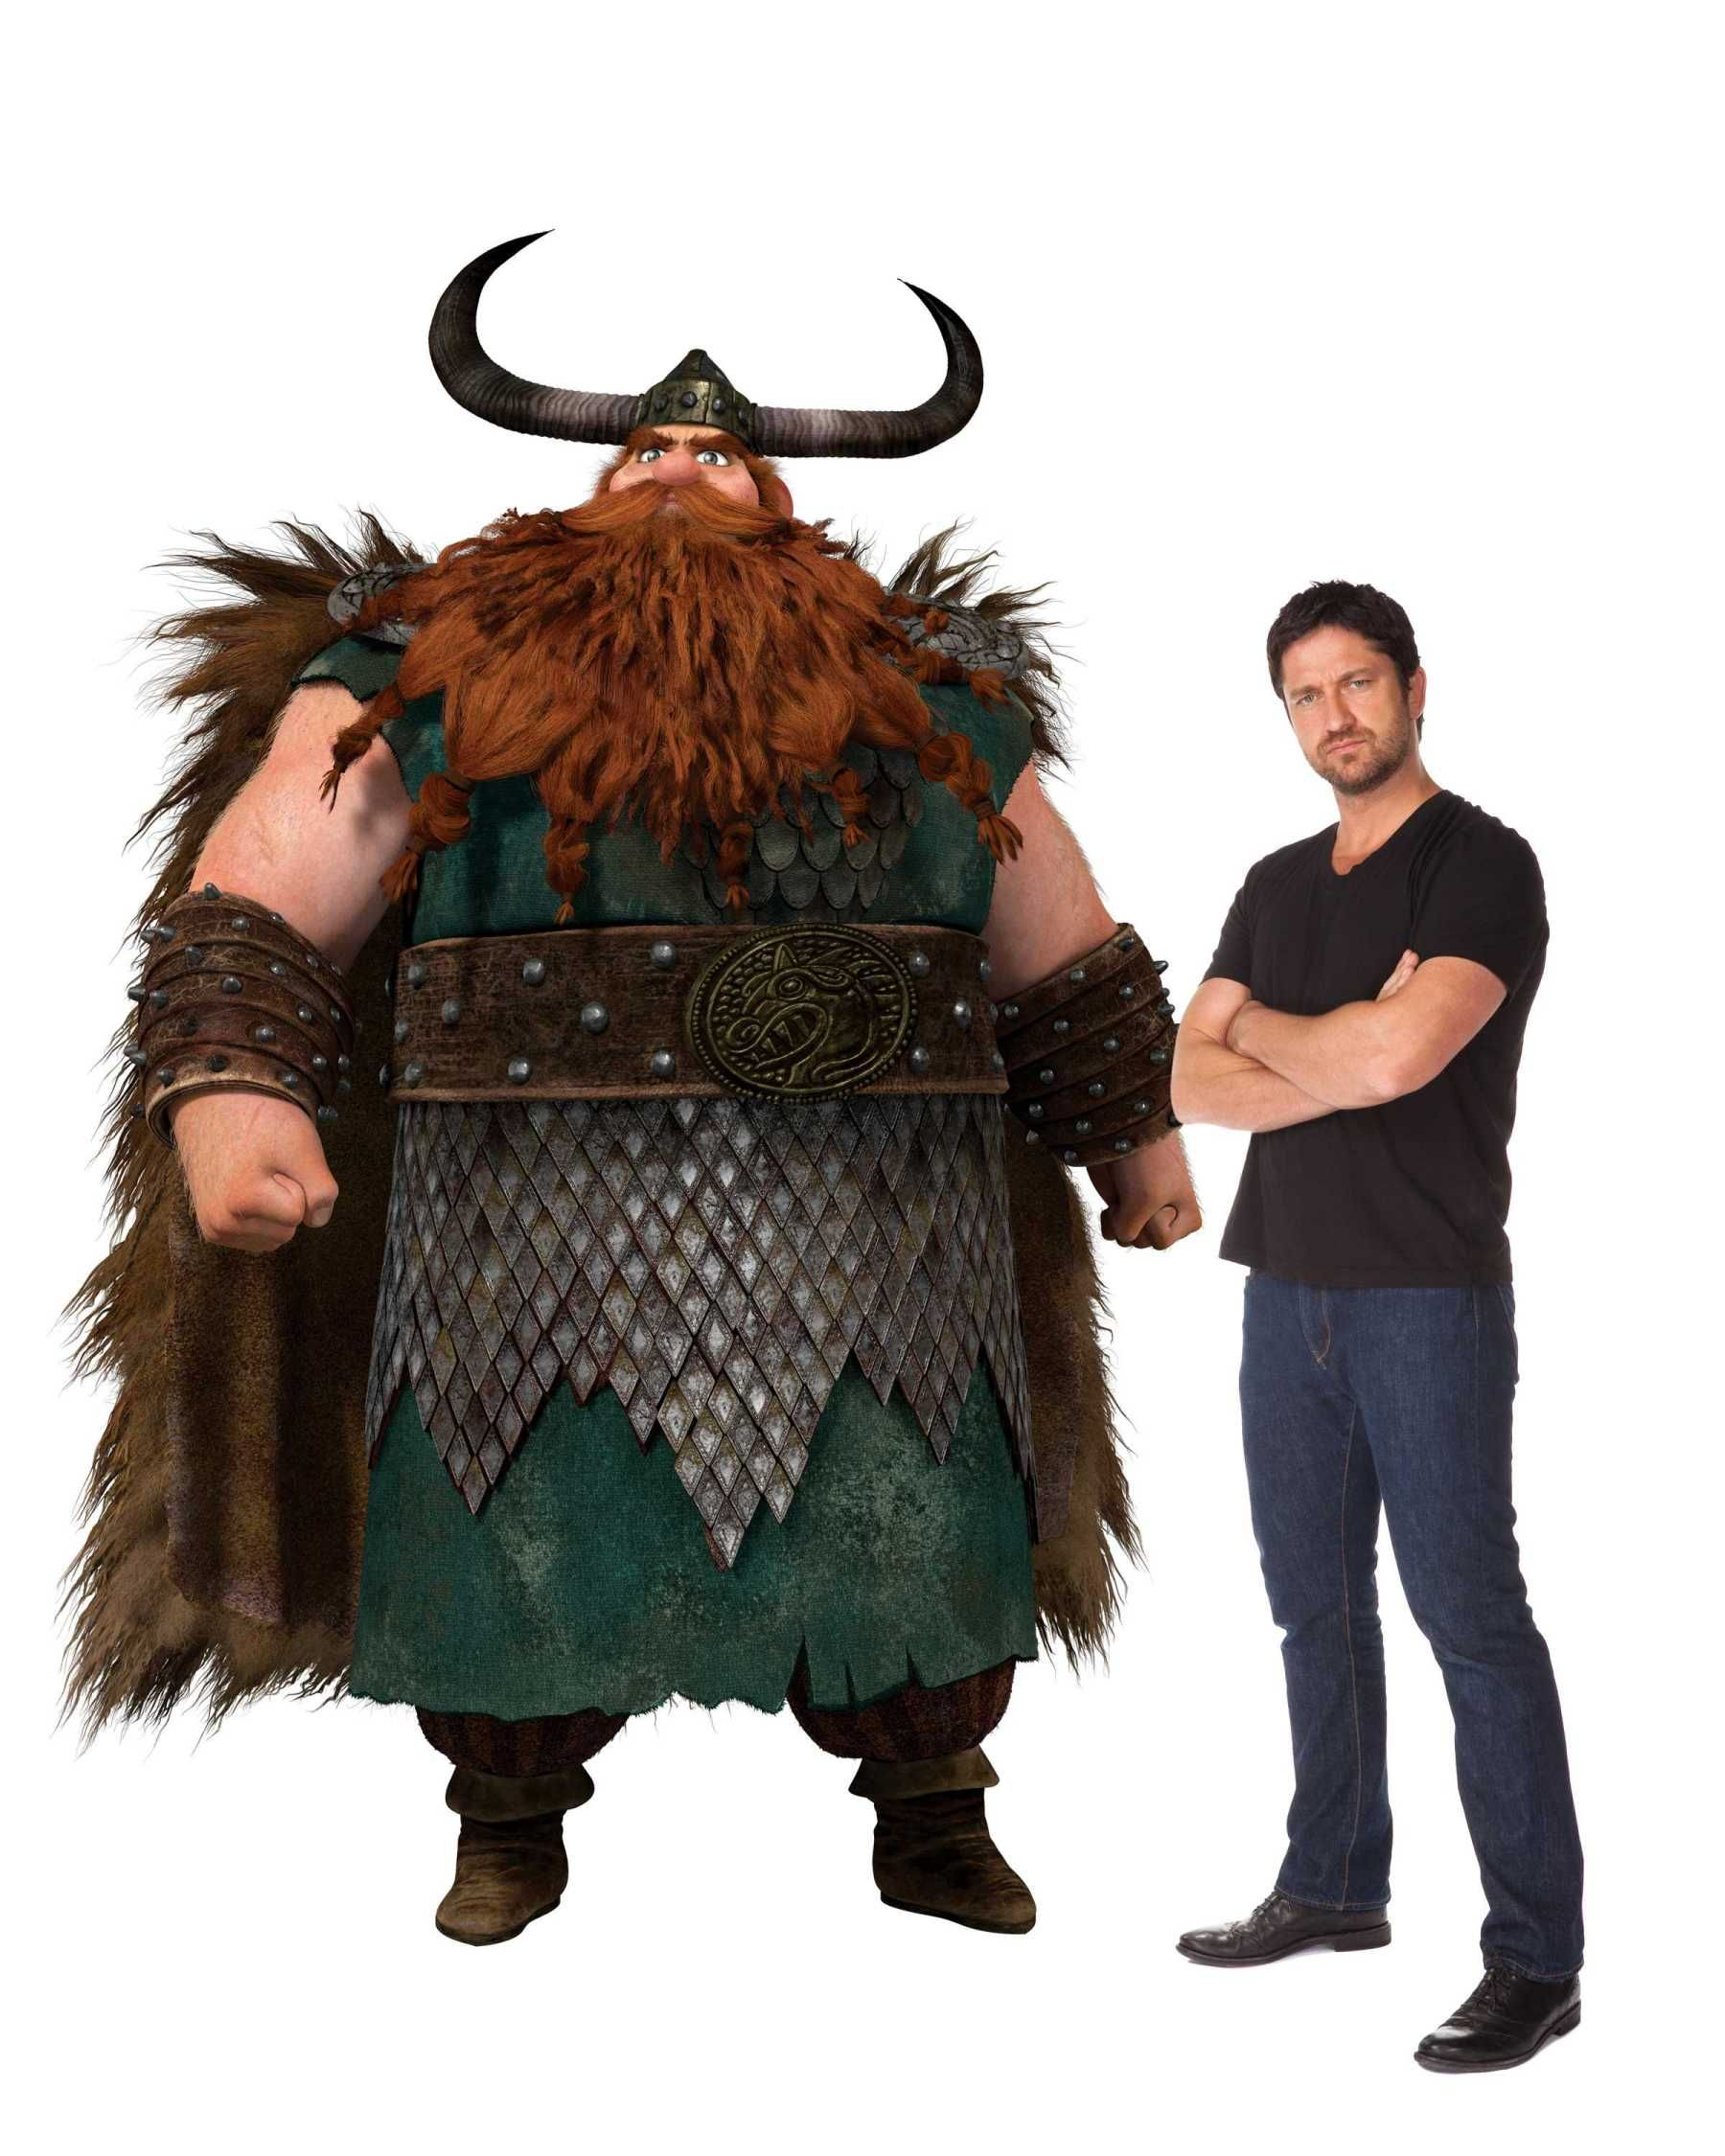 Dreamworks Movies, Dreamworks Animation, Dreamworks Dragons, 3d Animation,  Hiccup, Httyd, Train Your Dragon, How To Train Your, Gerard Butler